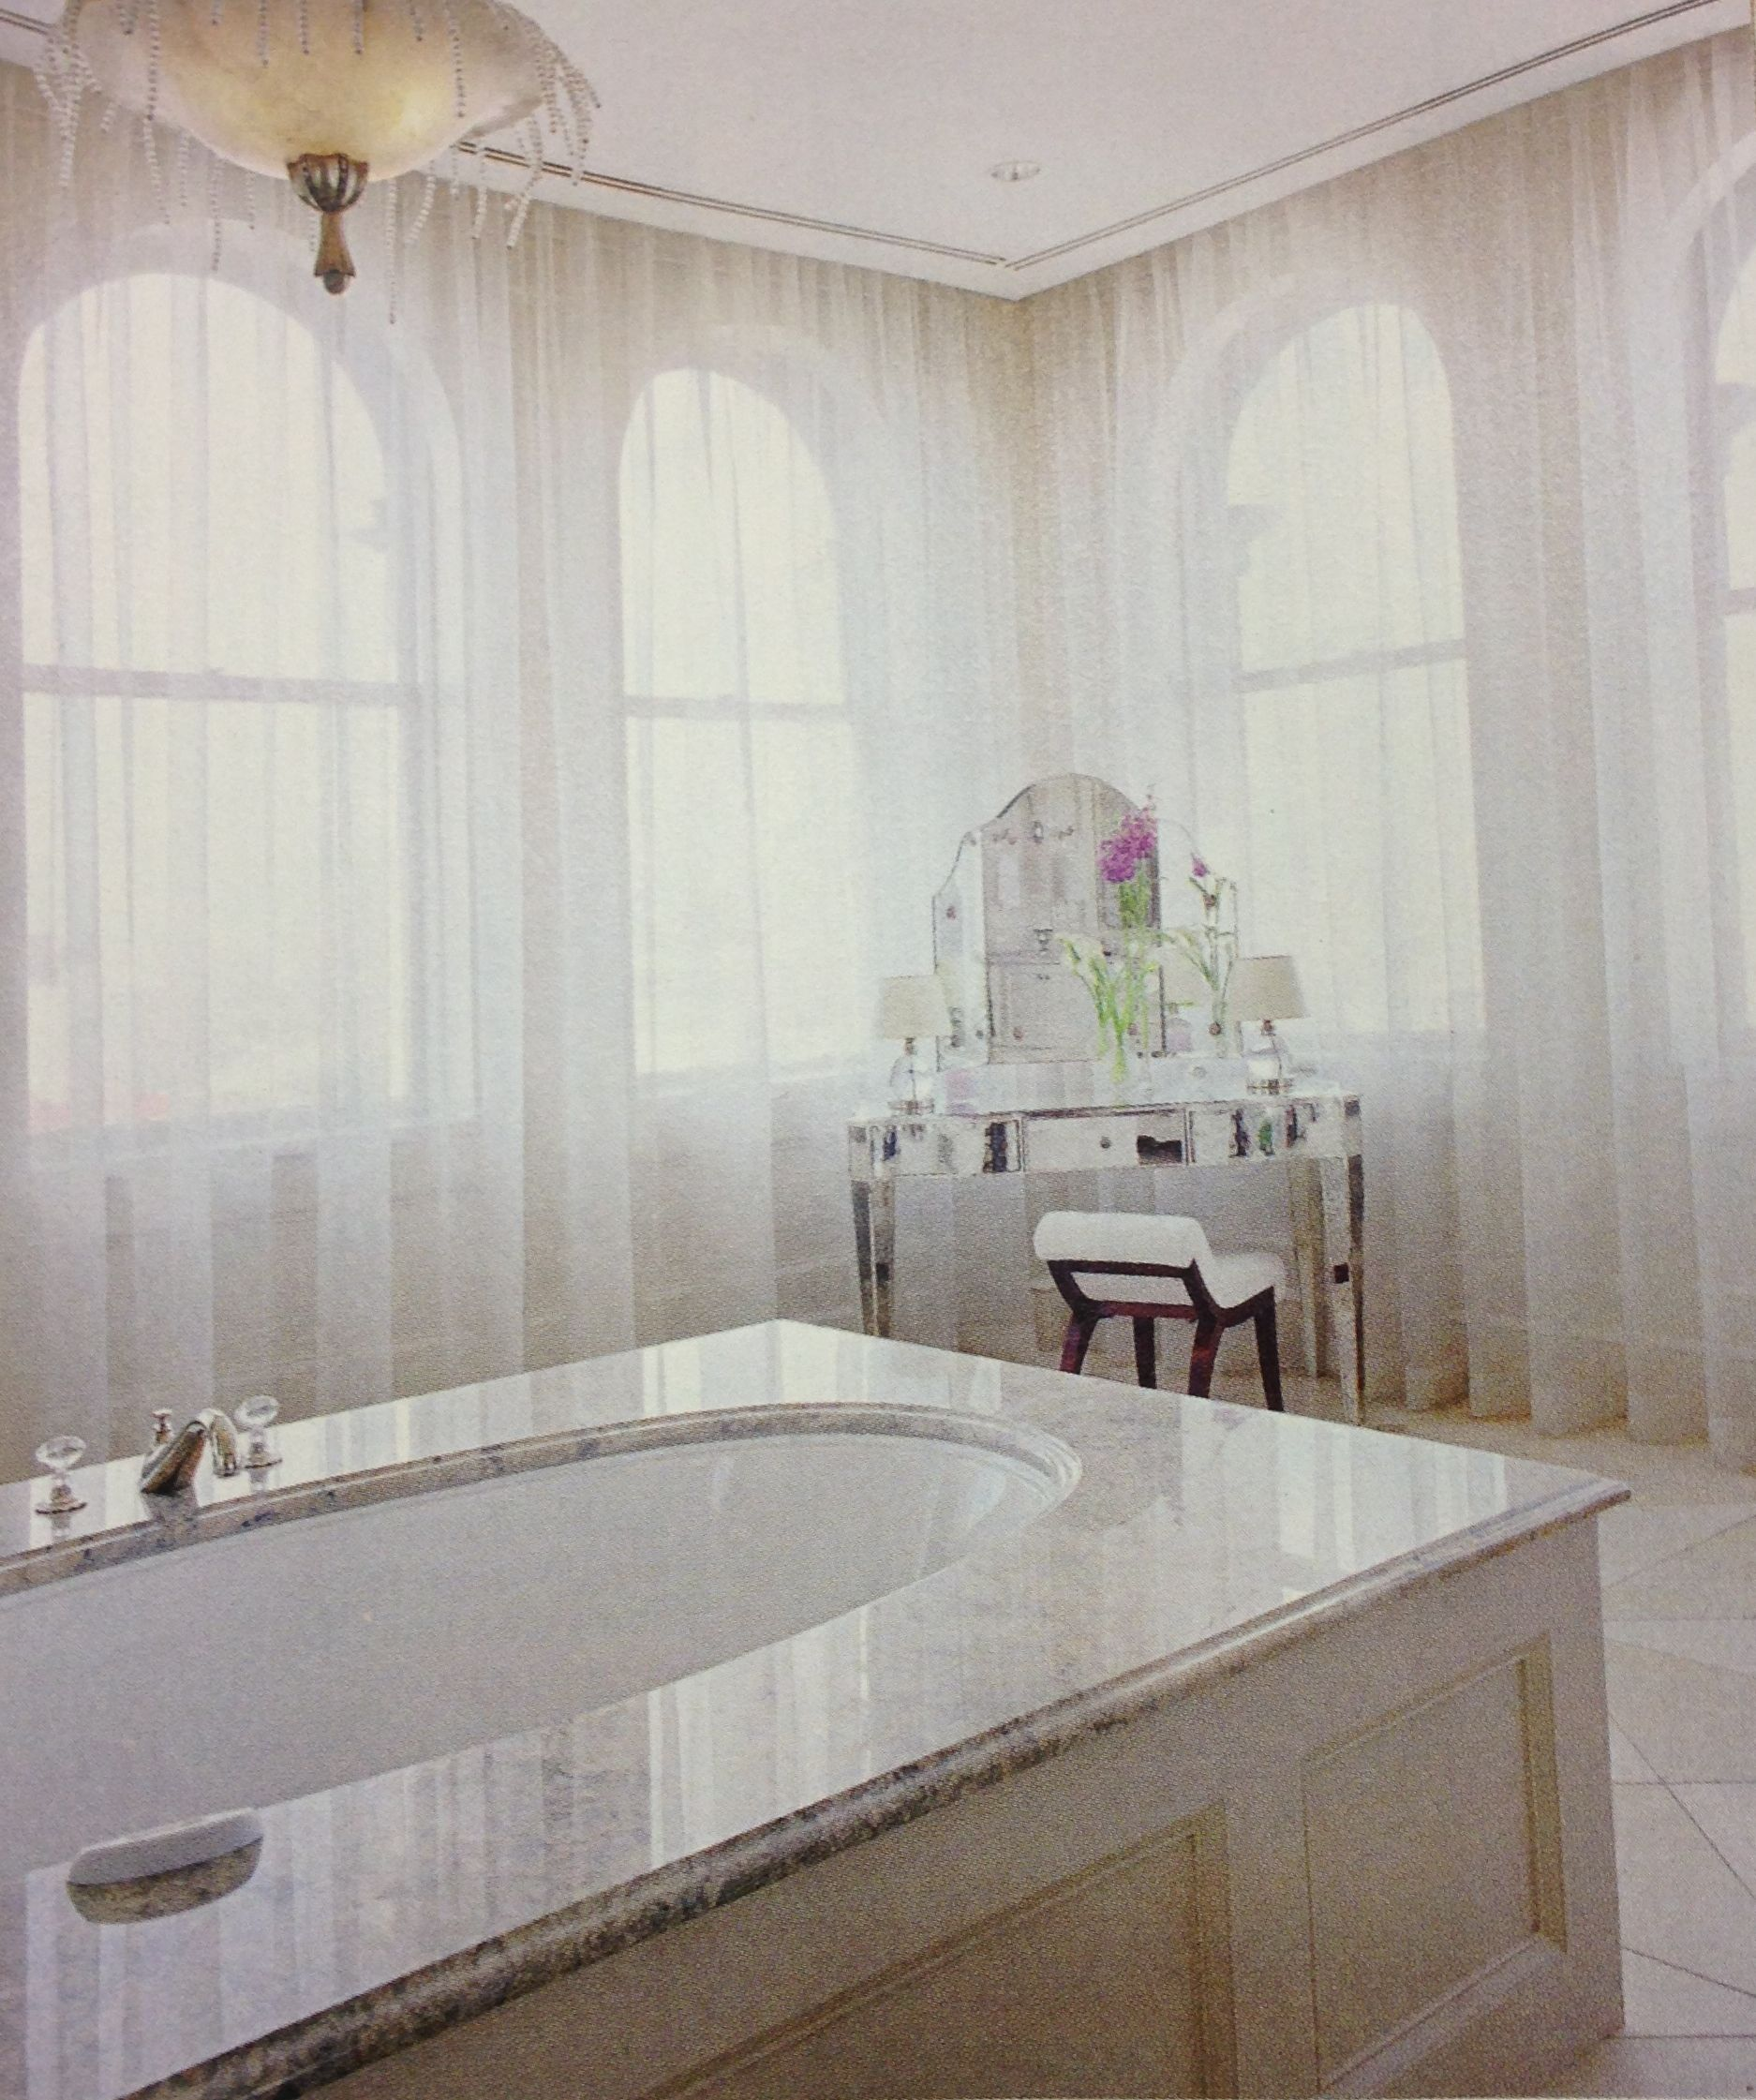 See Through Curtains see through curtains allow a certain amount of privacy while